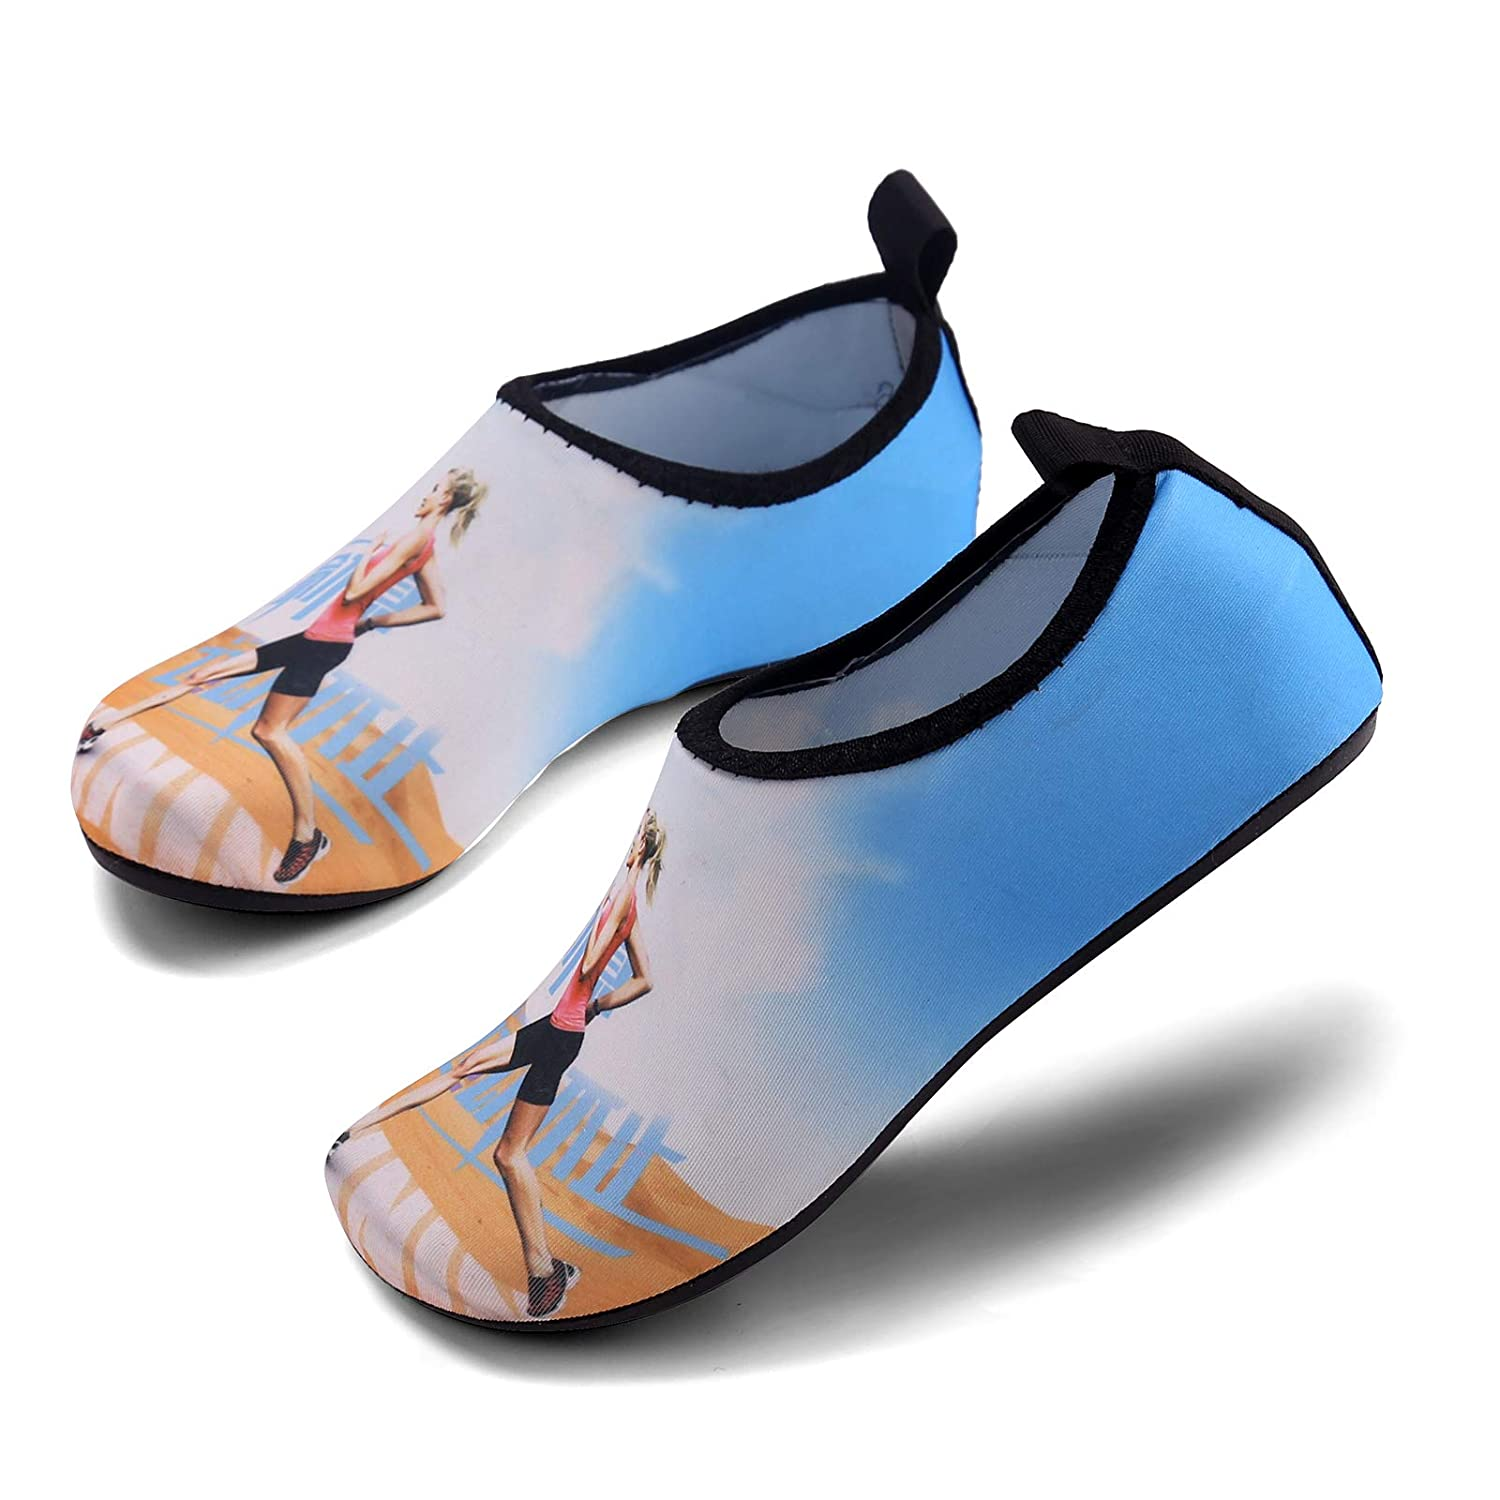 Aslipper Womens and Mens Summer Outdoor Water Shoes Aqua Socks for Beach Swim Surf Yoga Exercise